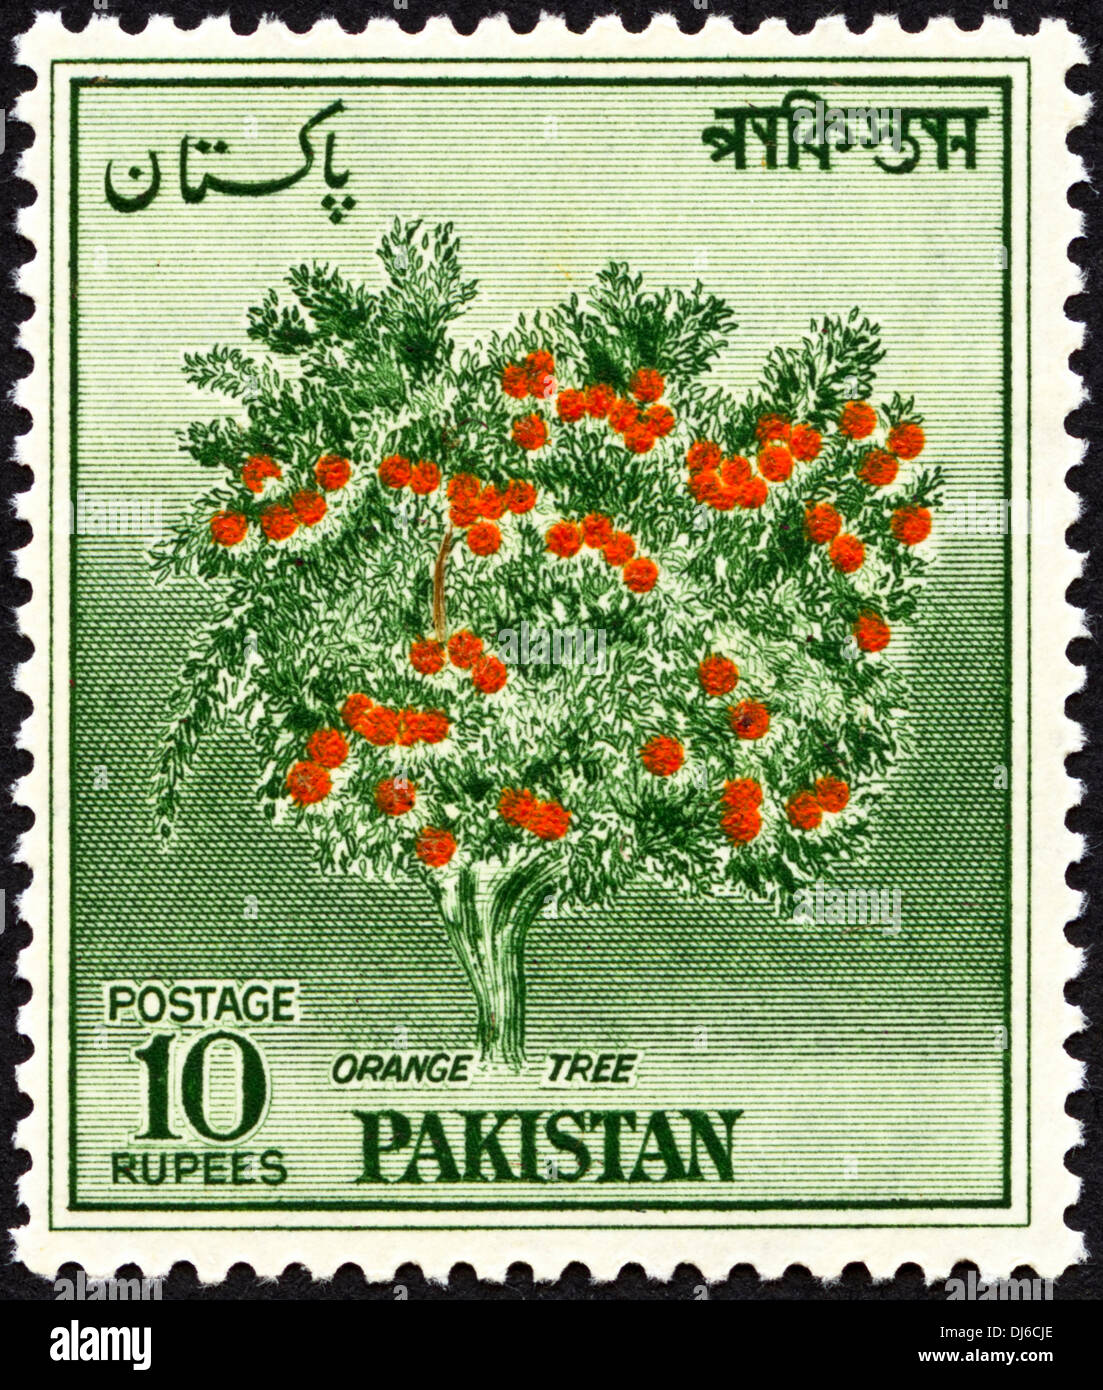 postage stamp Pakistan 10 Rupees featuring Orange Tree dated 1967 - Stock Image